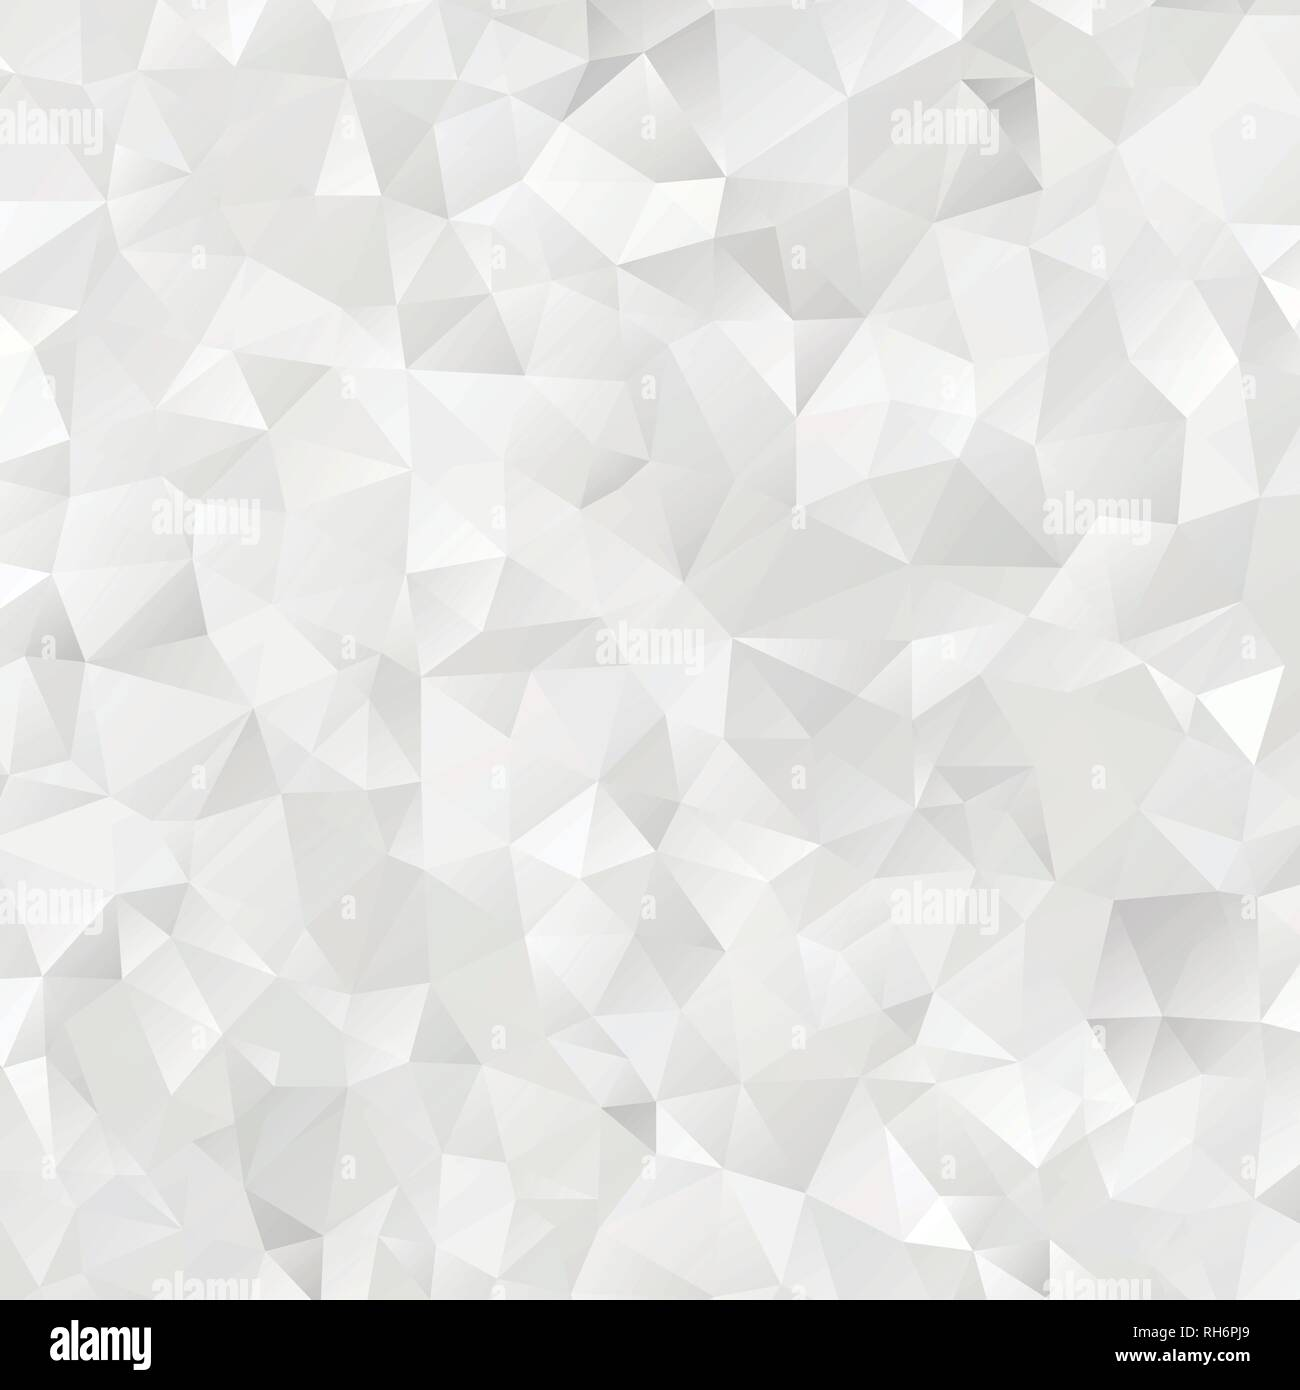 White polygon art background geometric pattern triangle polygon design vector background low poly illustrated white background business design